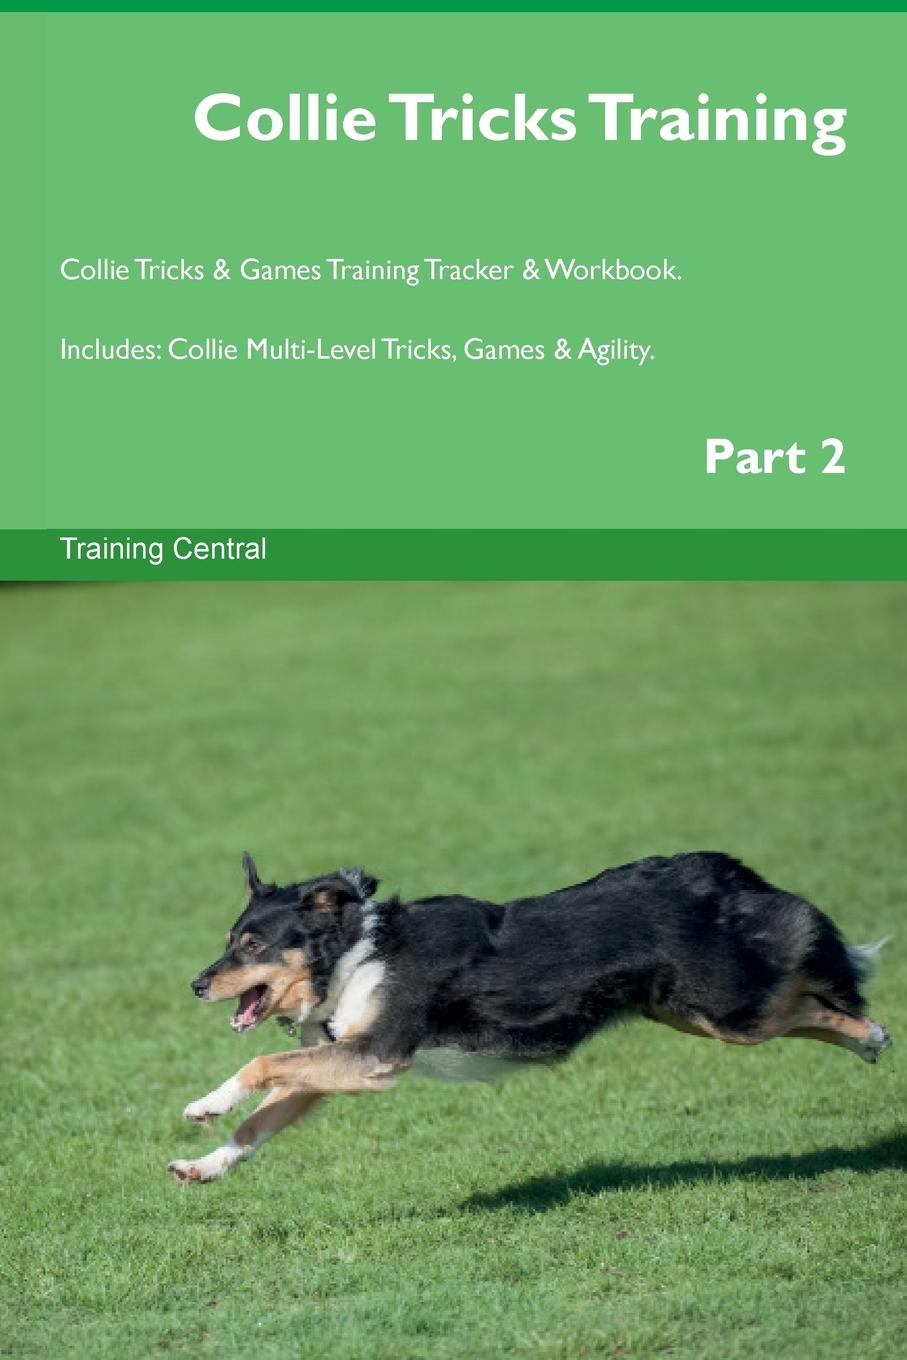 Training Central Collie Tricks Training Collie Tricks . Games Training Tracker . Workbook. Includes. Collie Multi-Level Tricks, Games . Agility. Part 2 this book loves you